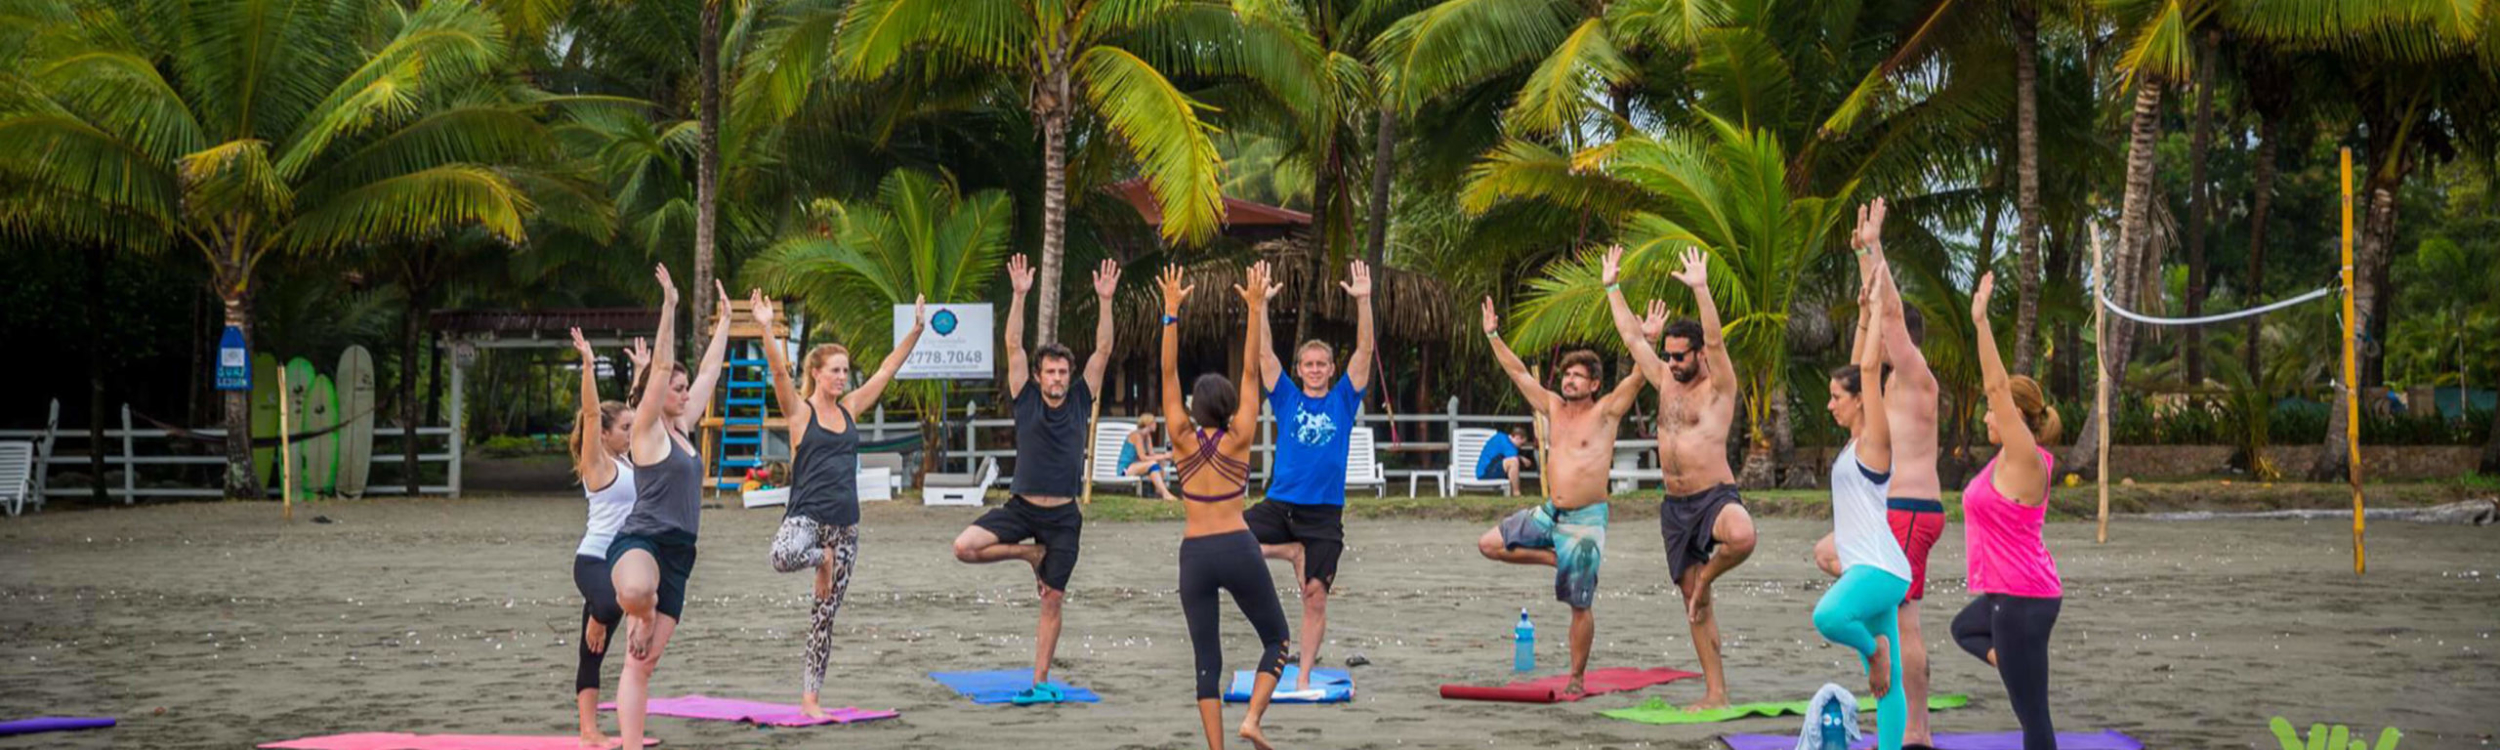 yoga-beach-surf-costa-rica